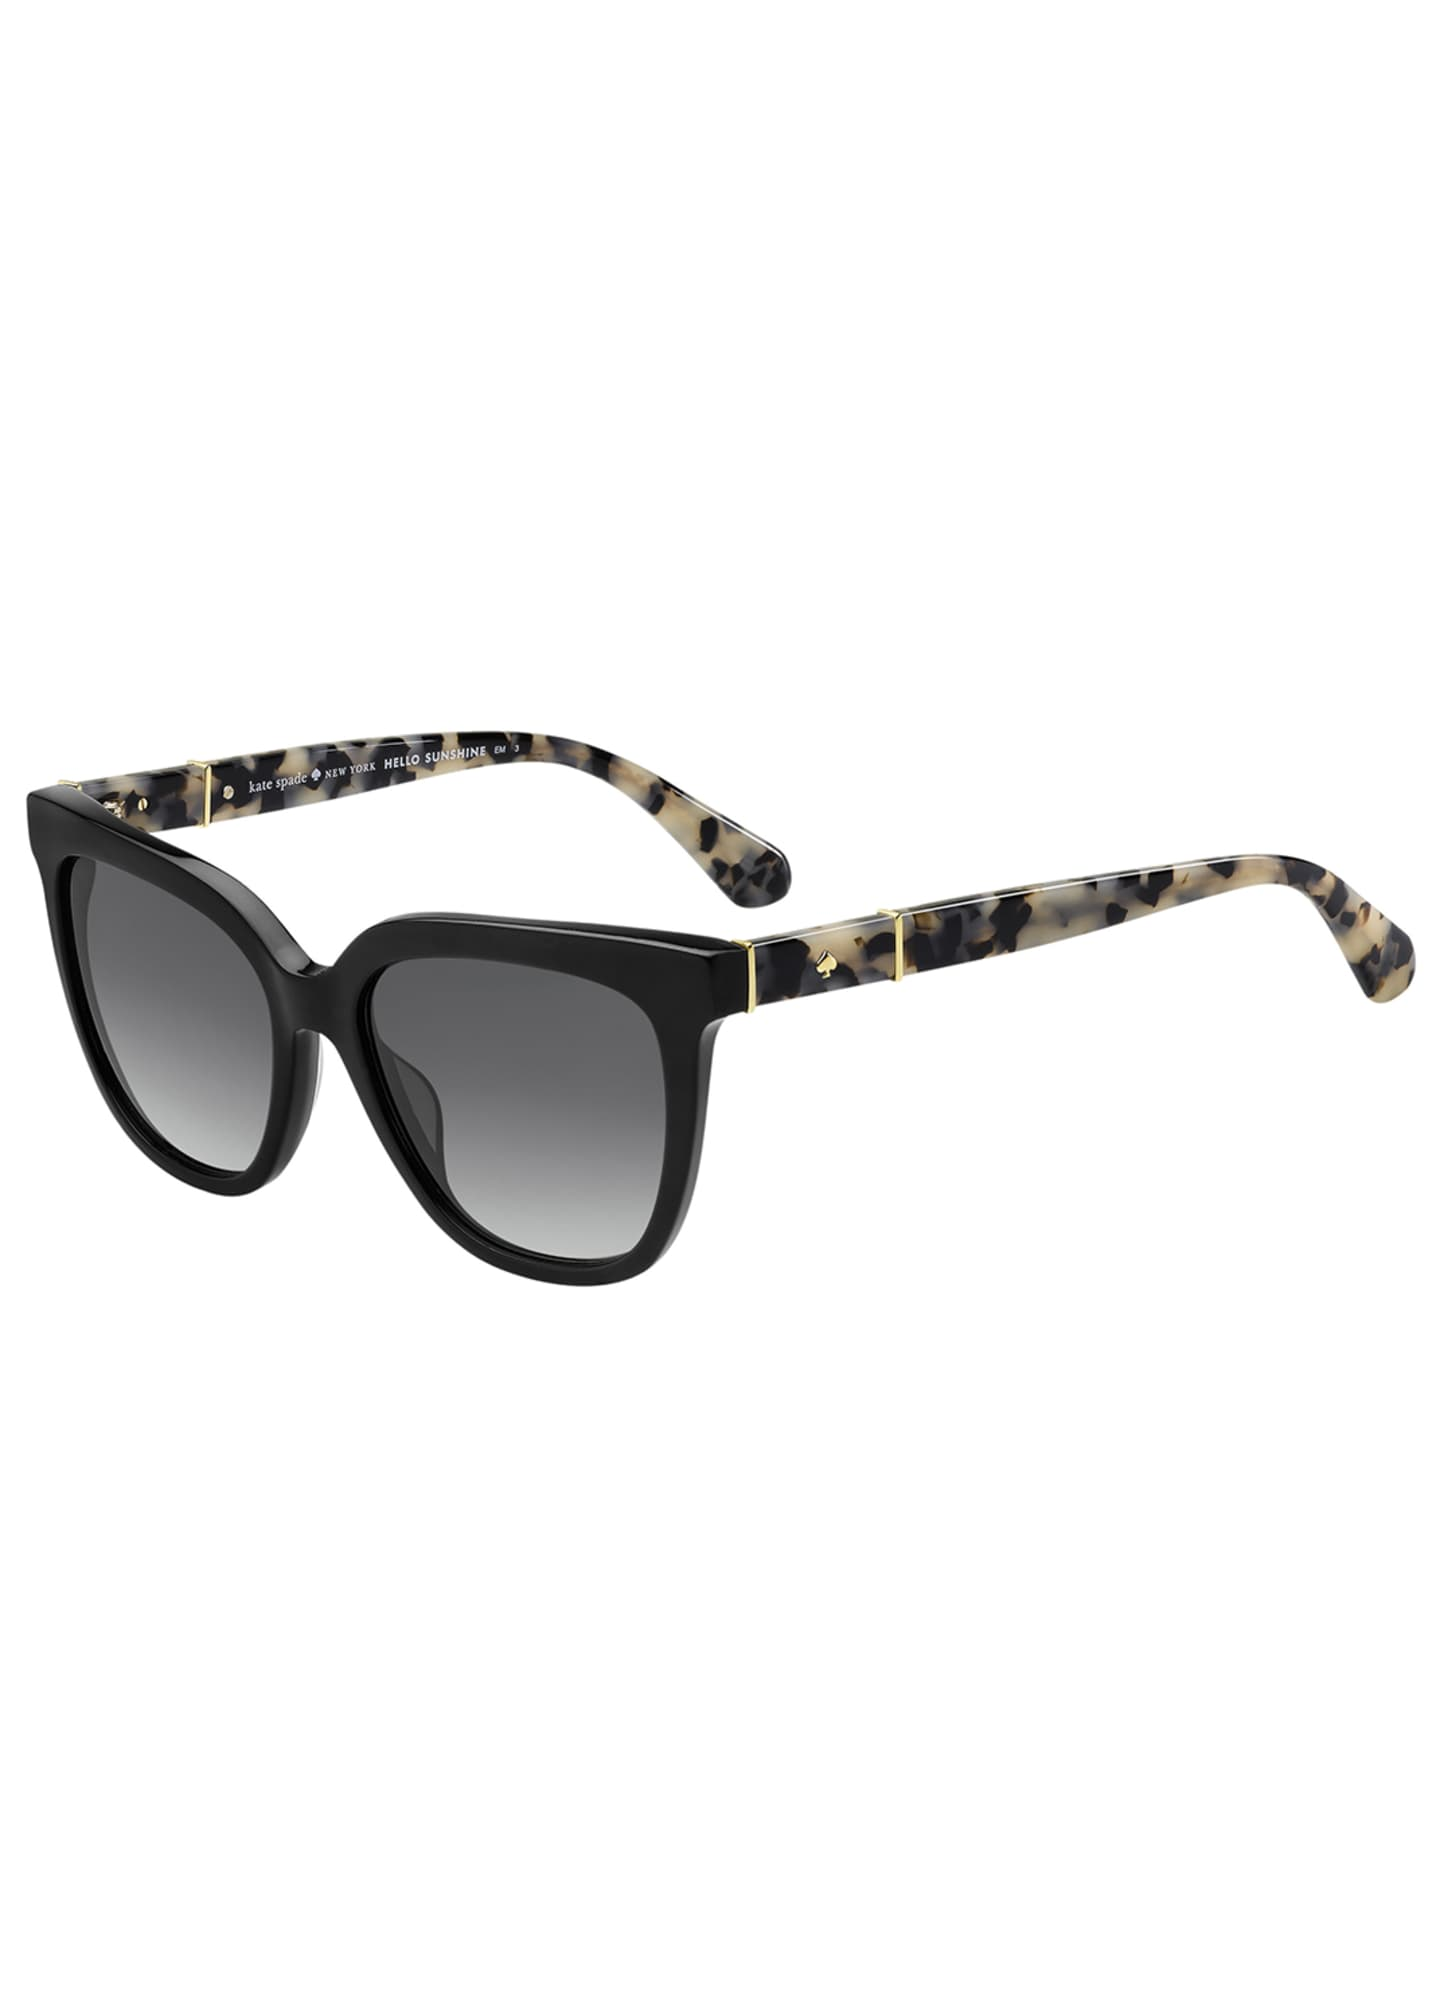 kate spade new york kahli two-tone acetate sunglasses